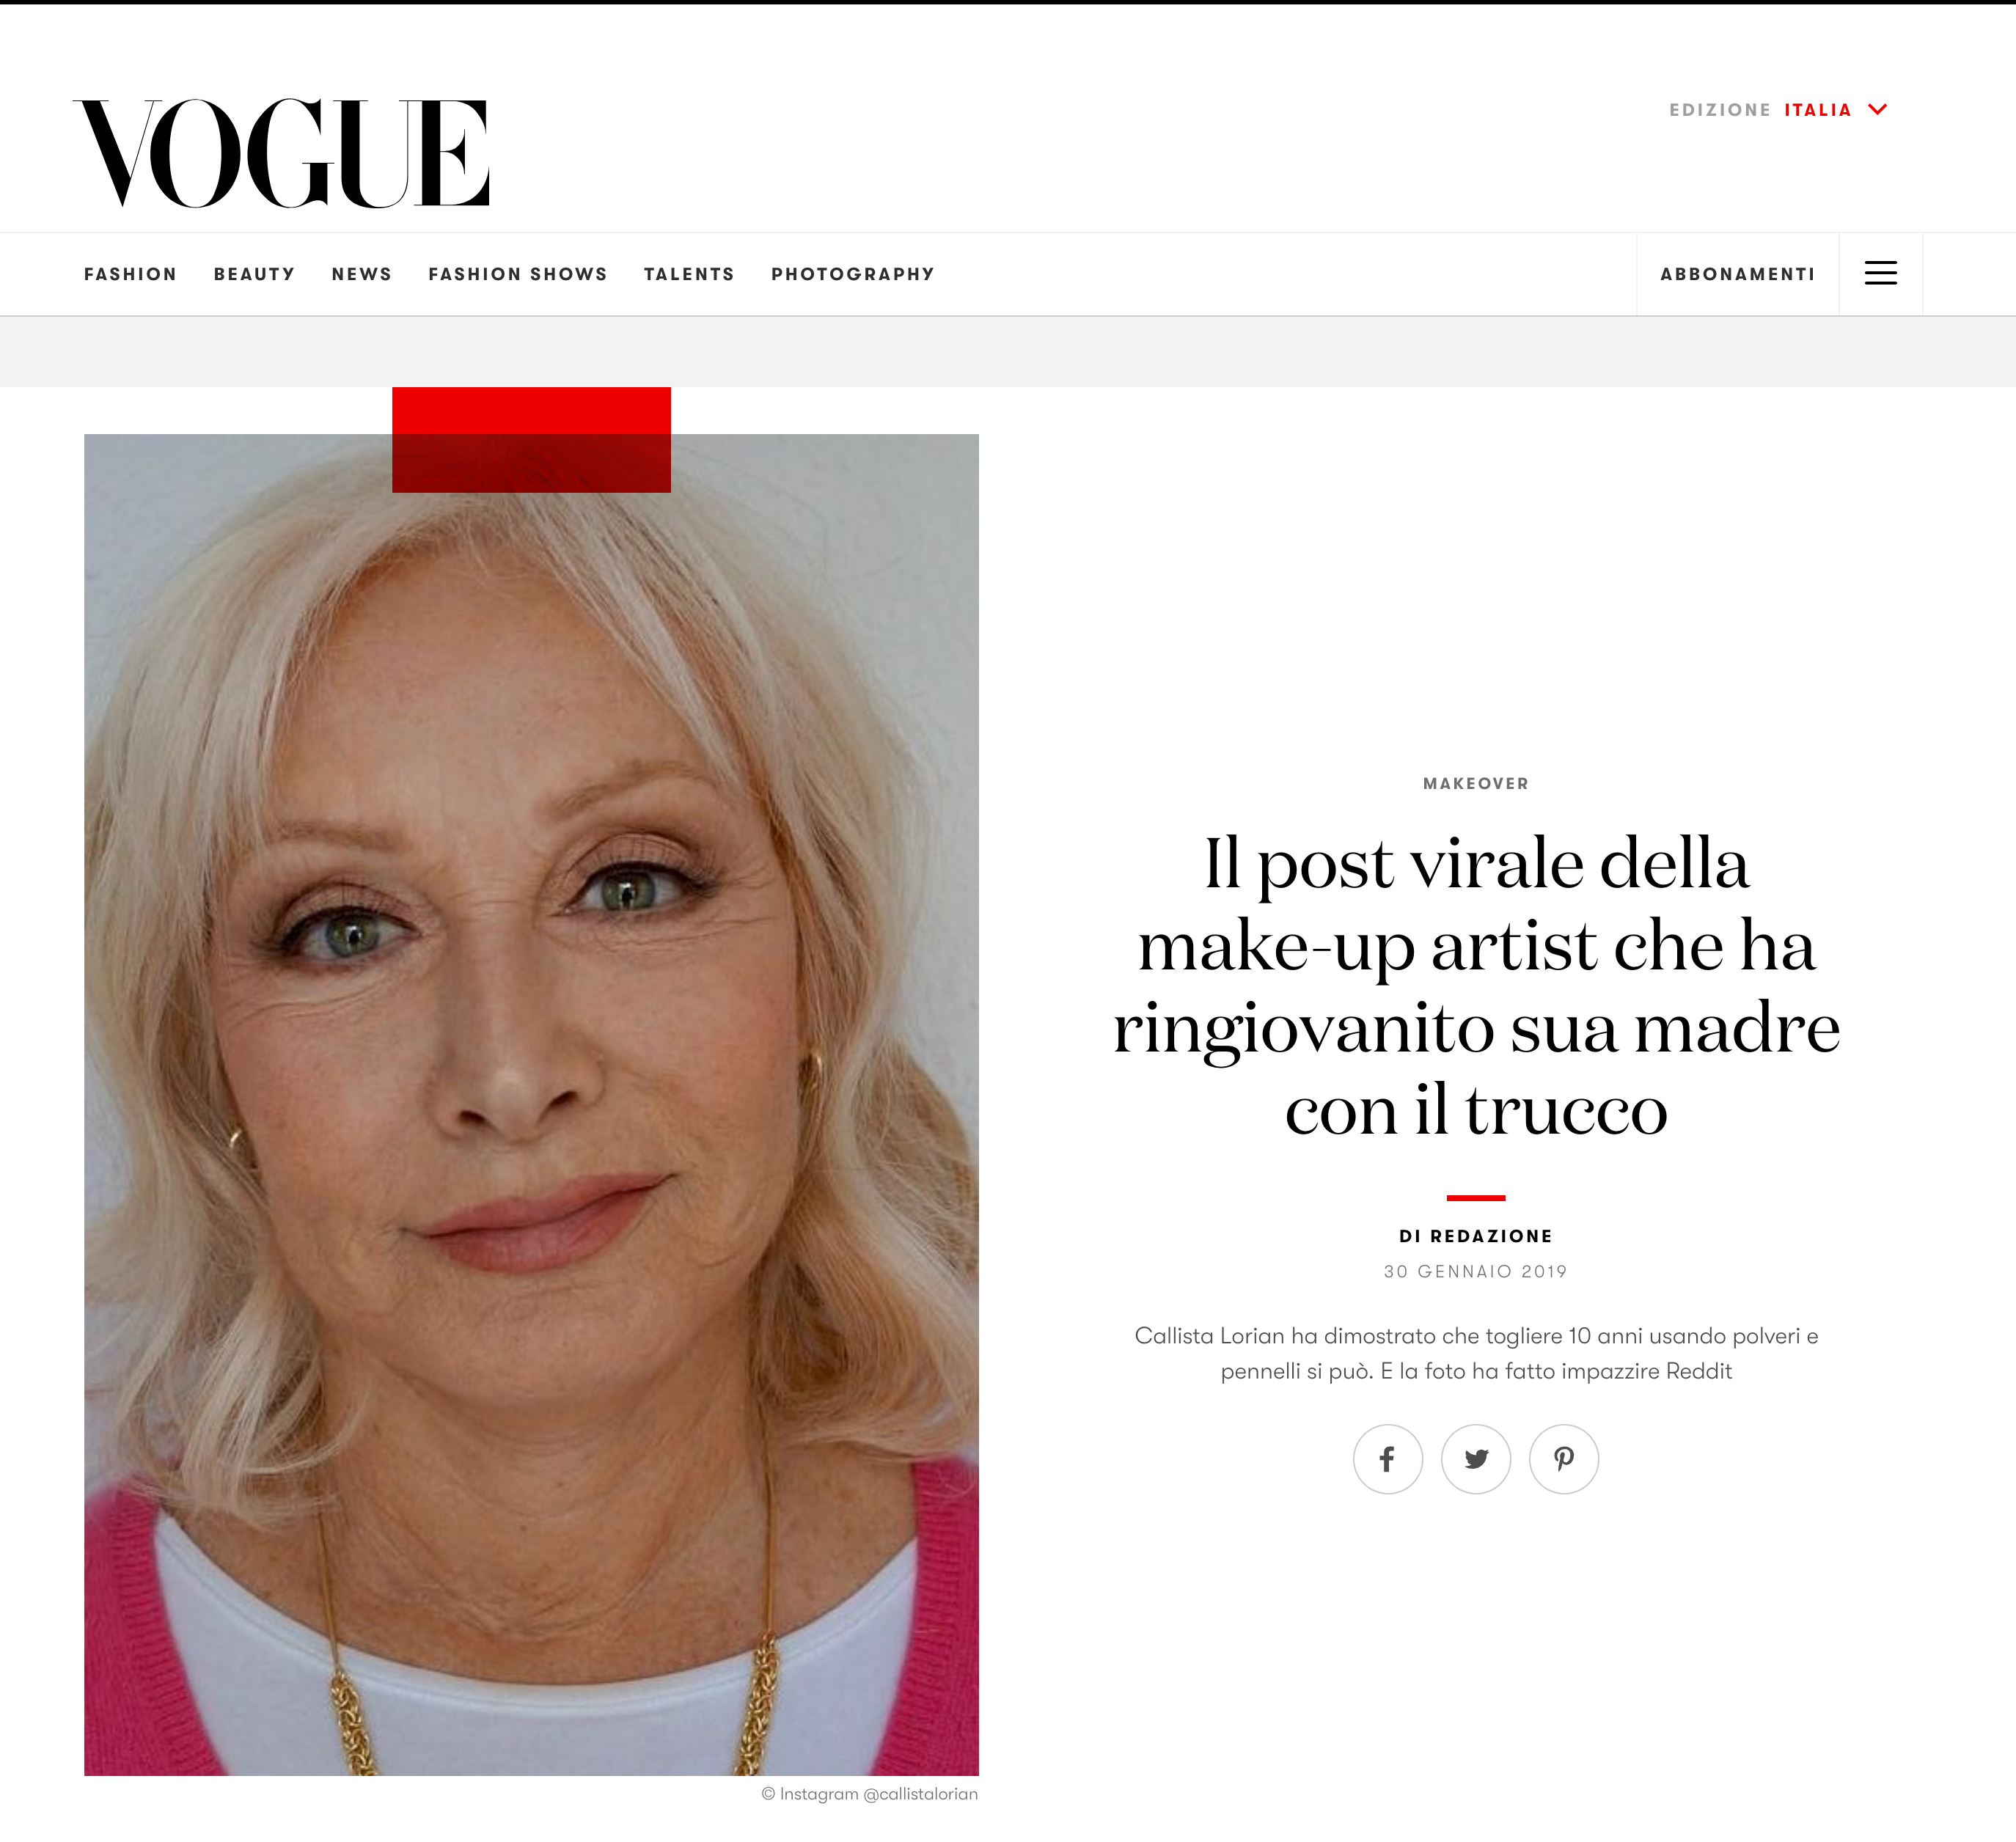 Vogue Italia feature article on our recent graduate, Callista Lorian